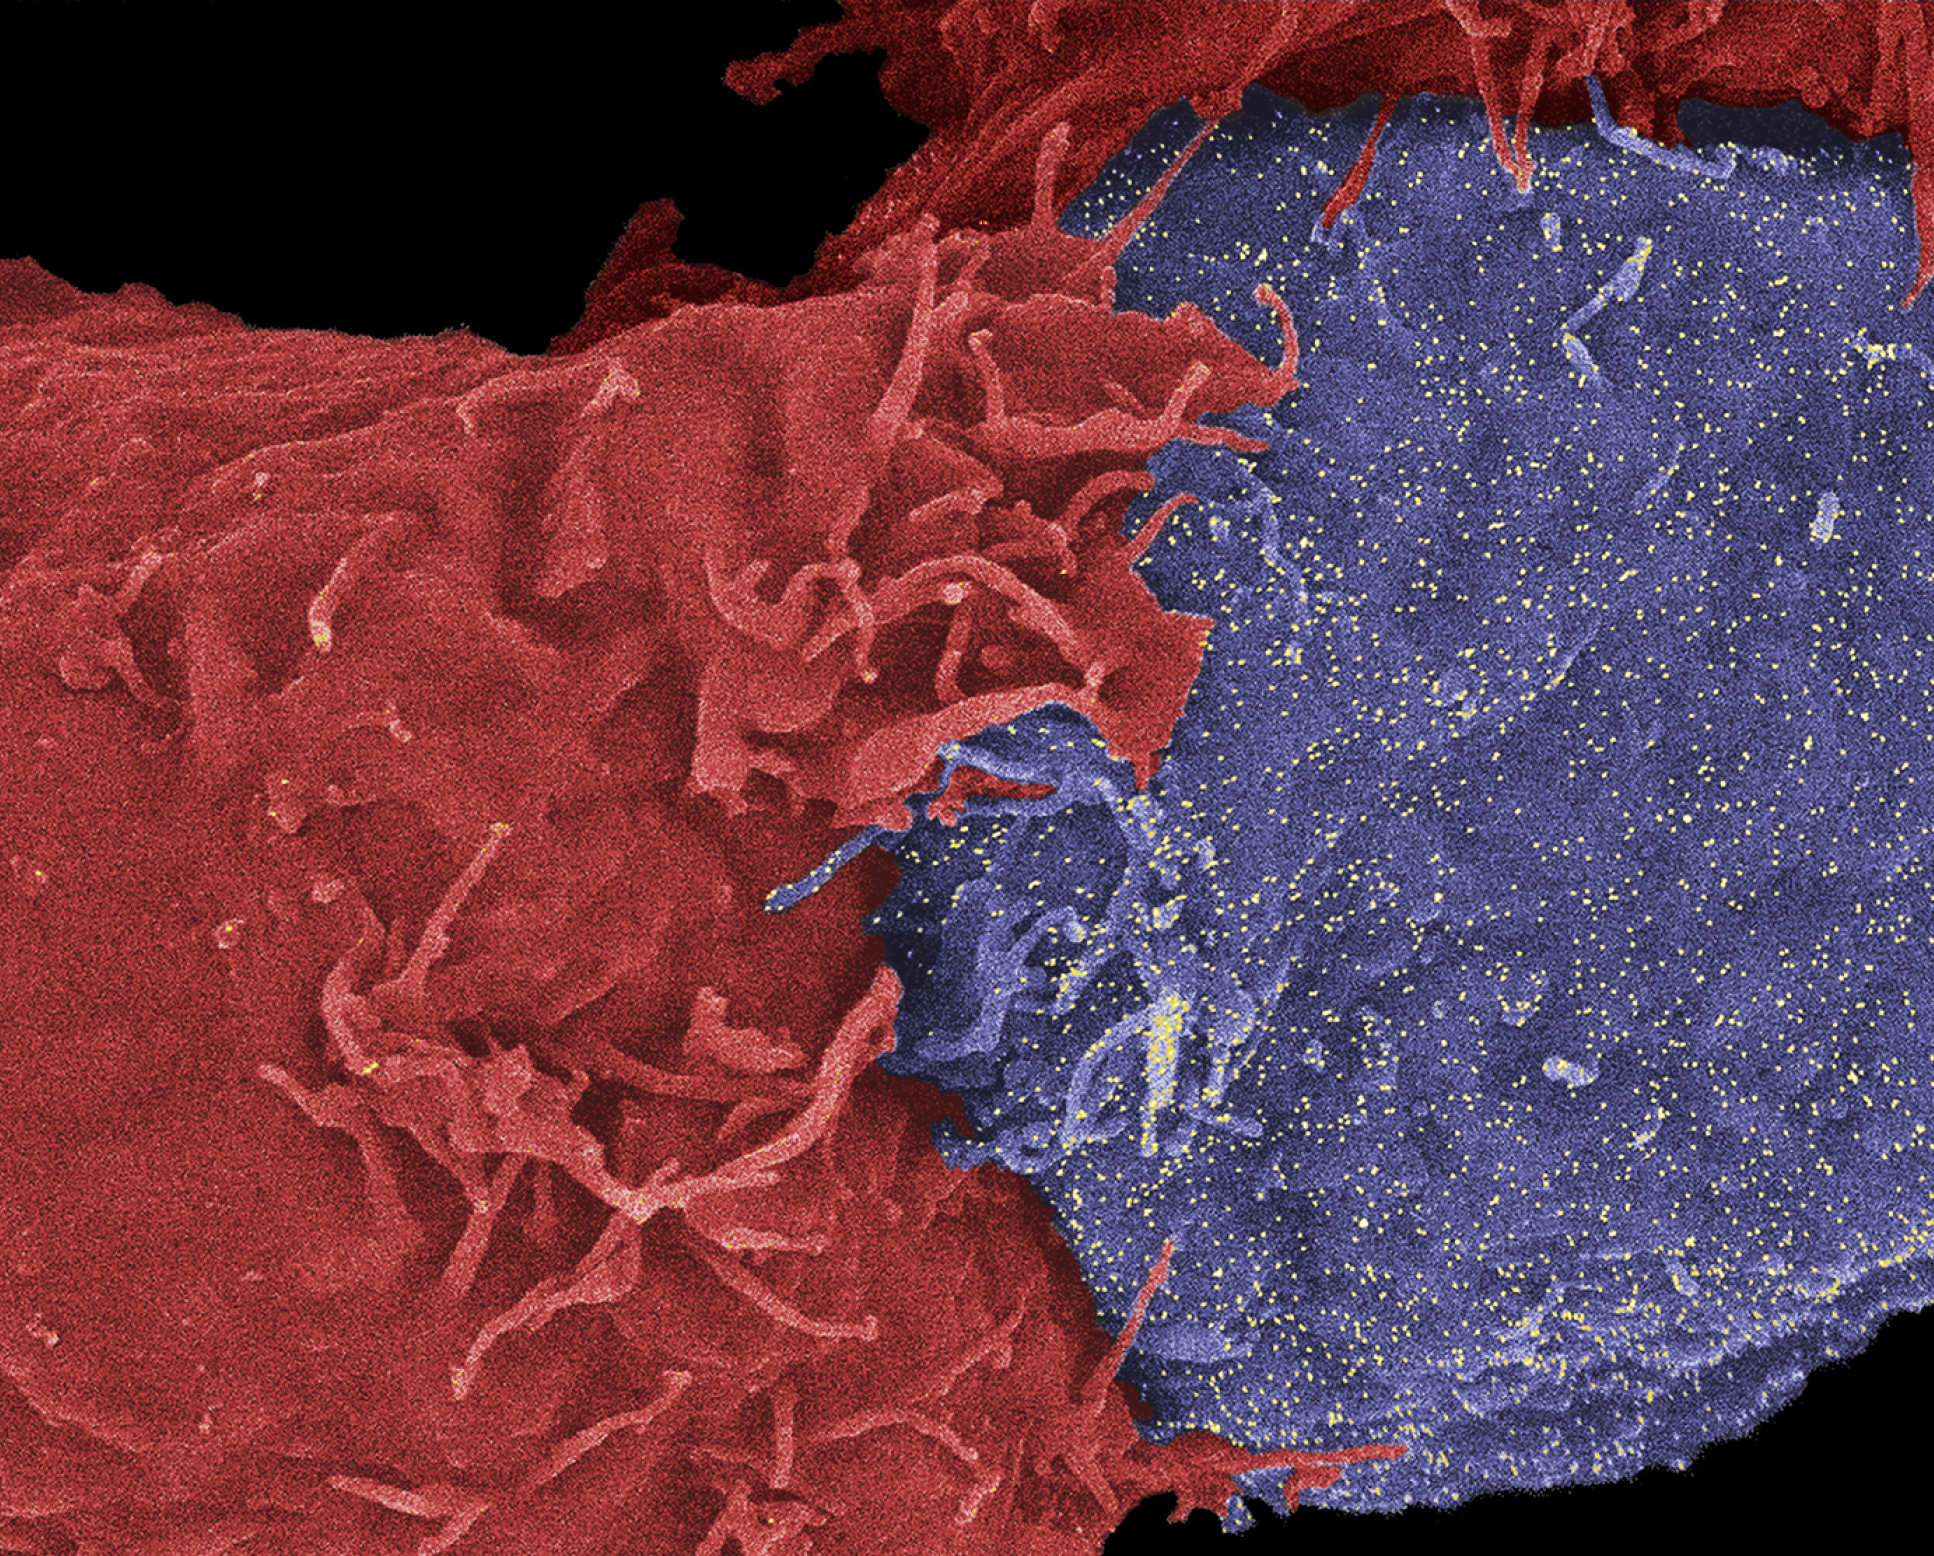 Success of cancer immunotherapy reduced by antibiotics